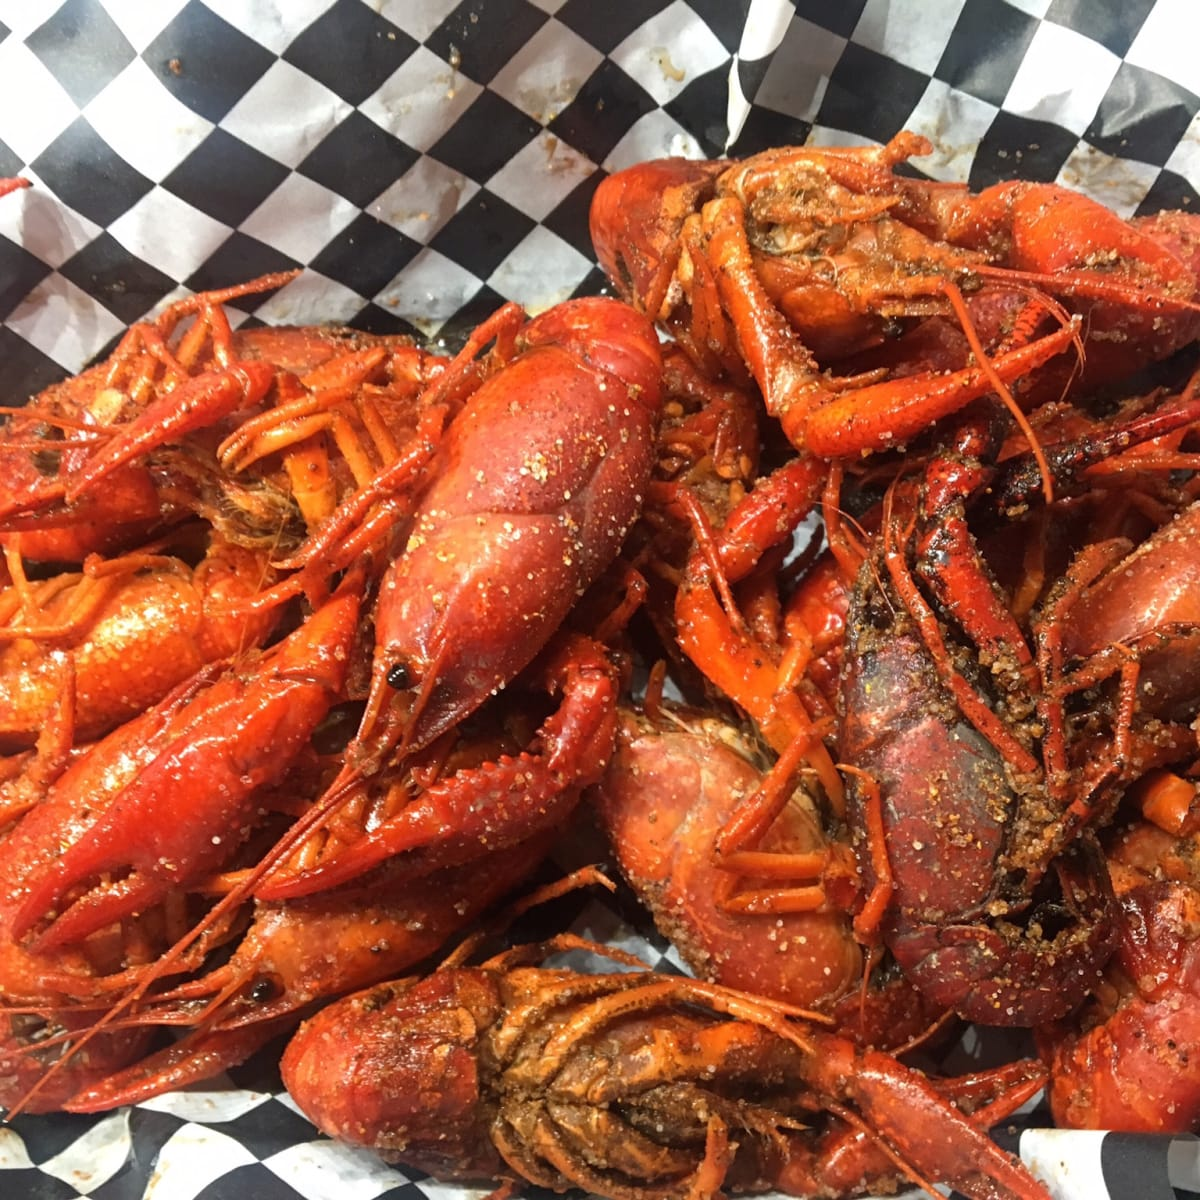 The Barking Pig crawfish